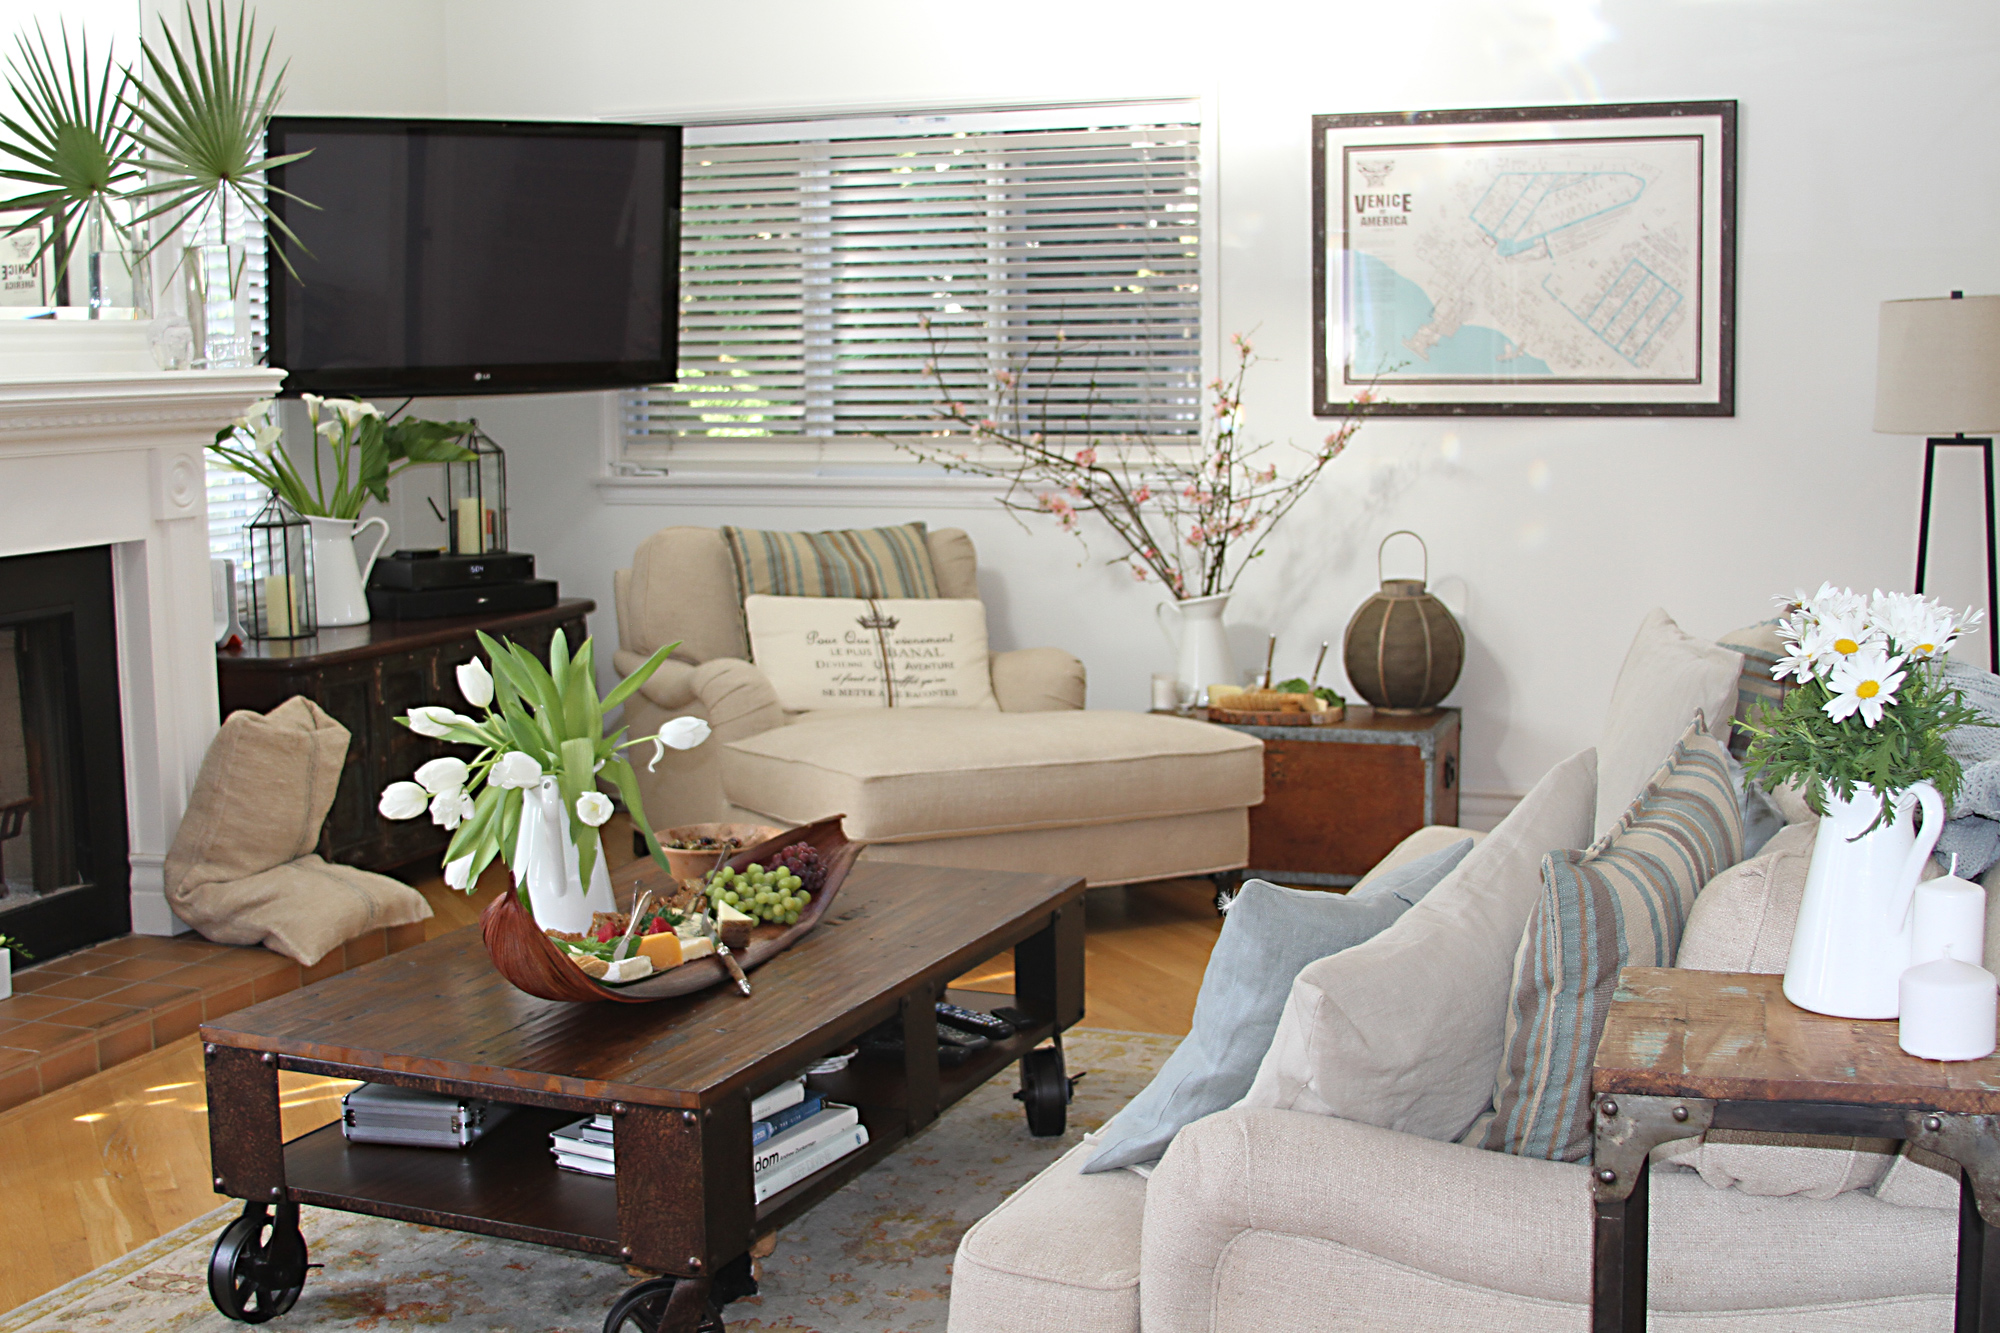 1a-after-living-room.jpg